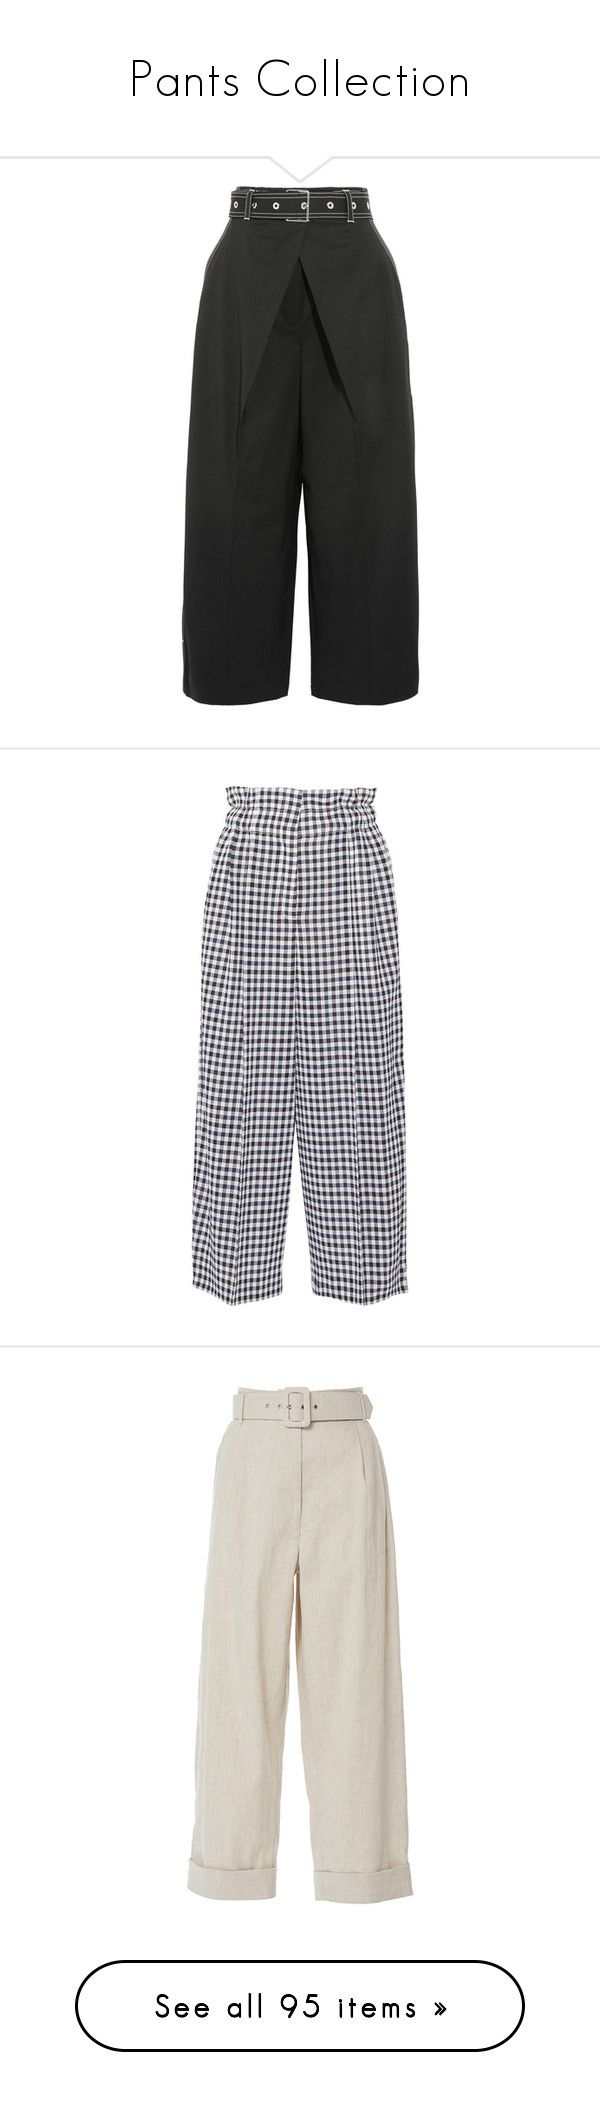 """""""Pants Collection"""" by tamara-40 ❤ liked on Polyvore featuring pants, capris, trousers, high waisted pleated pants, twill pants, pleated wide leg trousers, pleated wide leg pants, cropped pants, bottoms and wide-leg pants"""